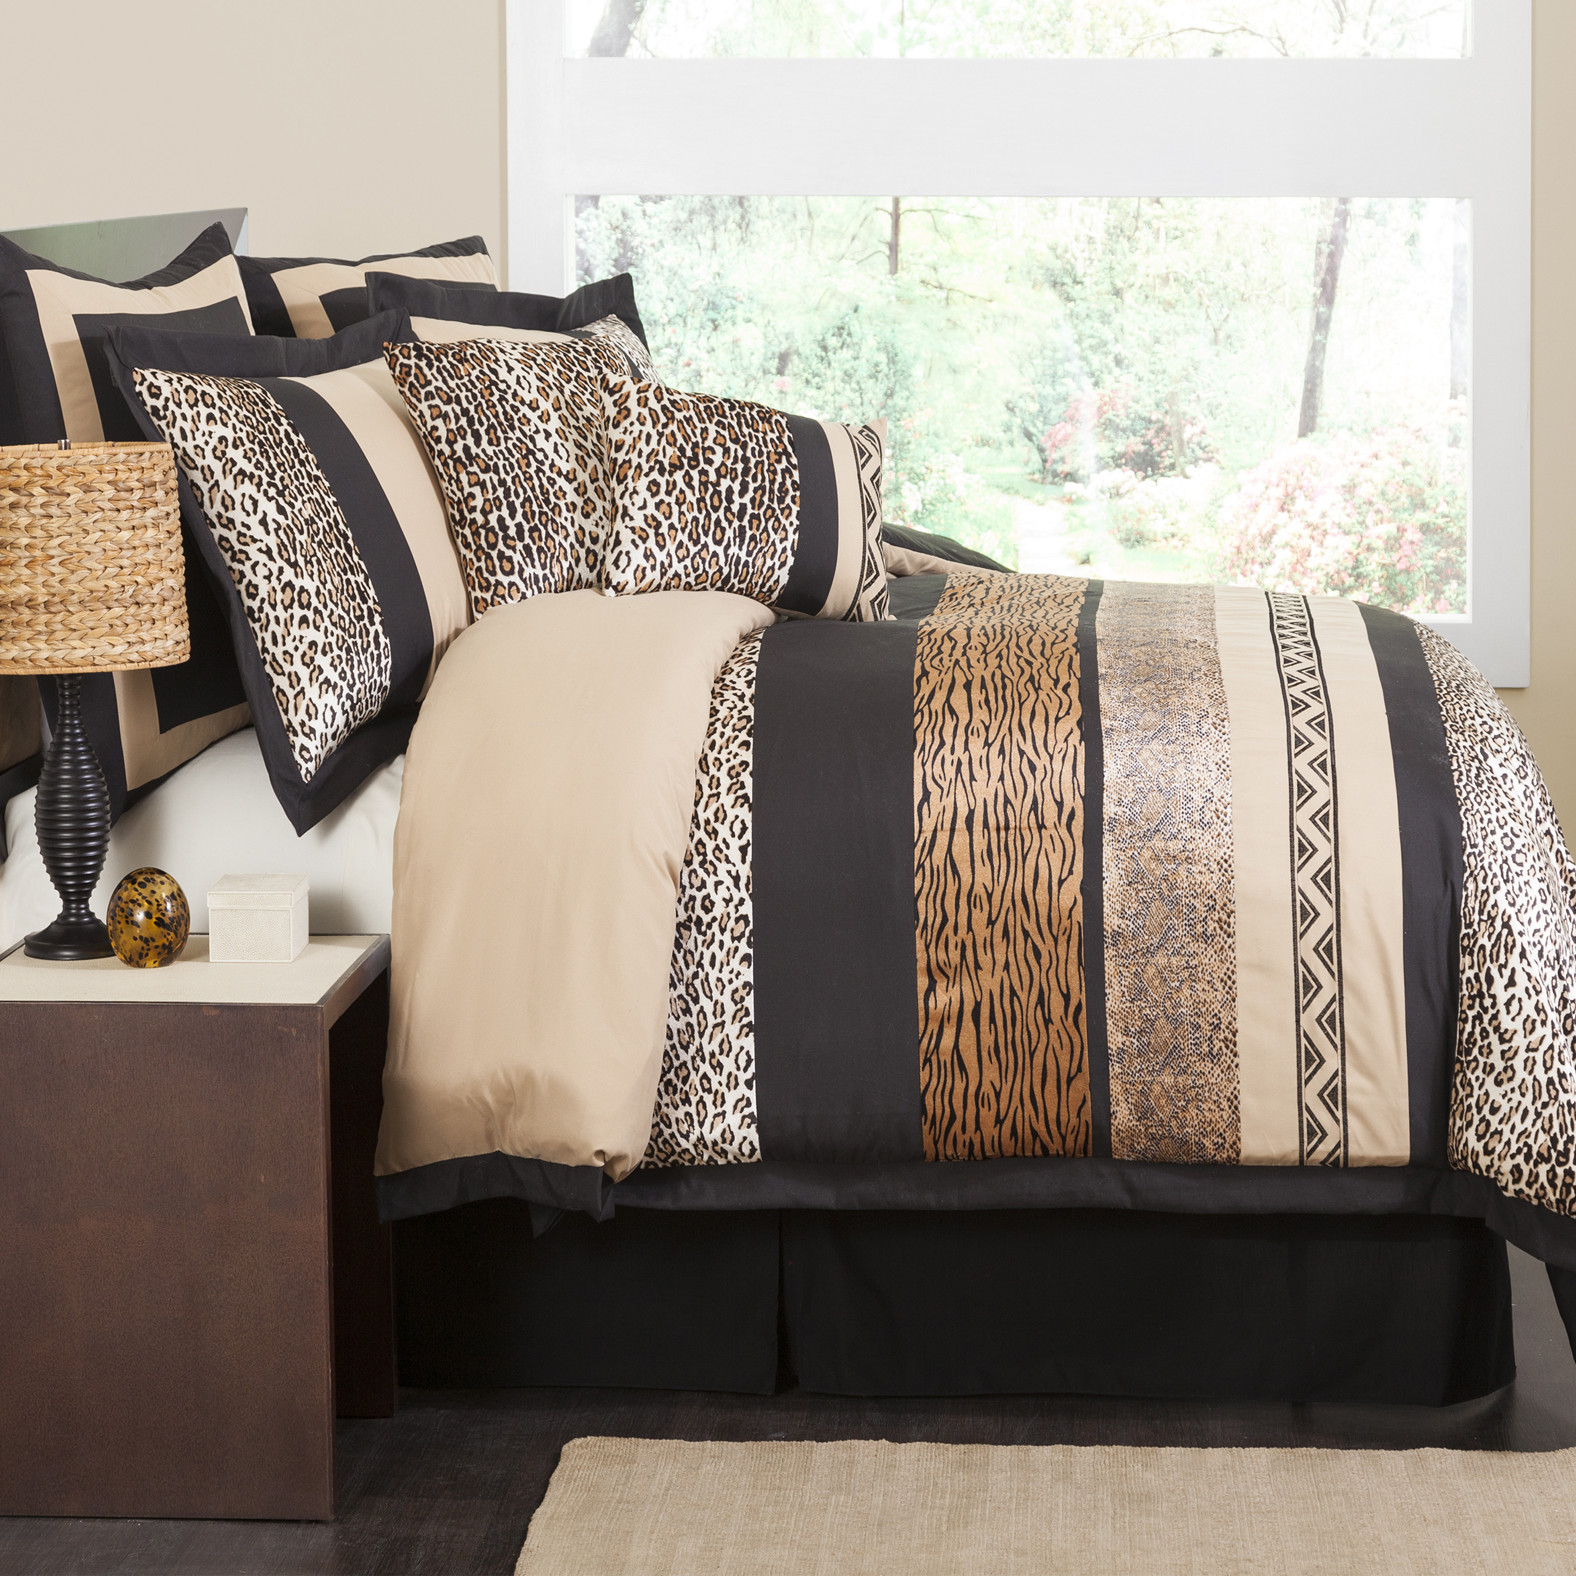 Lush Decor Tribal Animal Print Mix 8 Piece Comforter Set